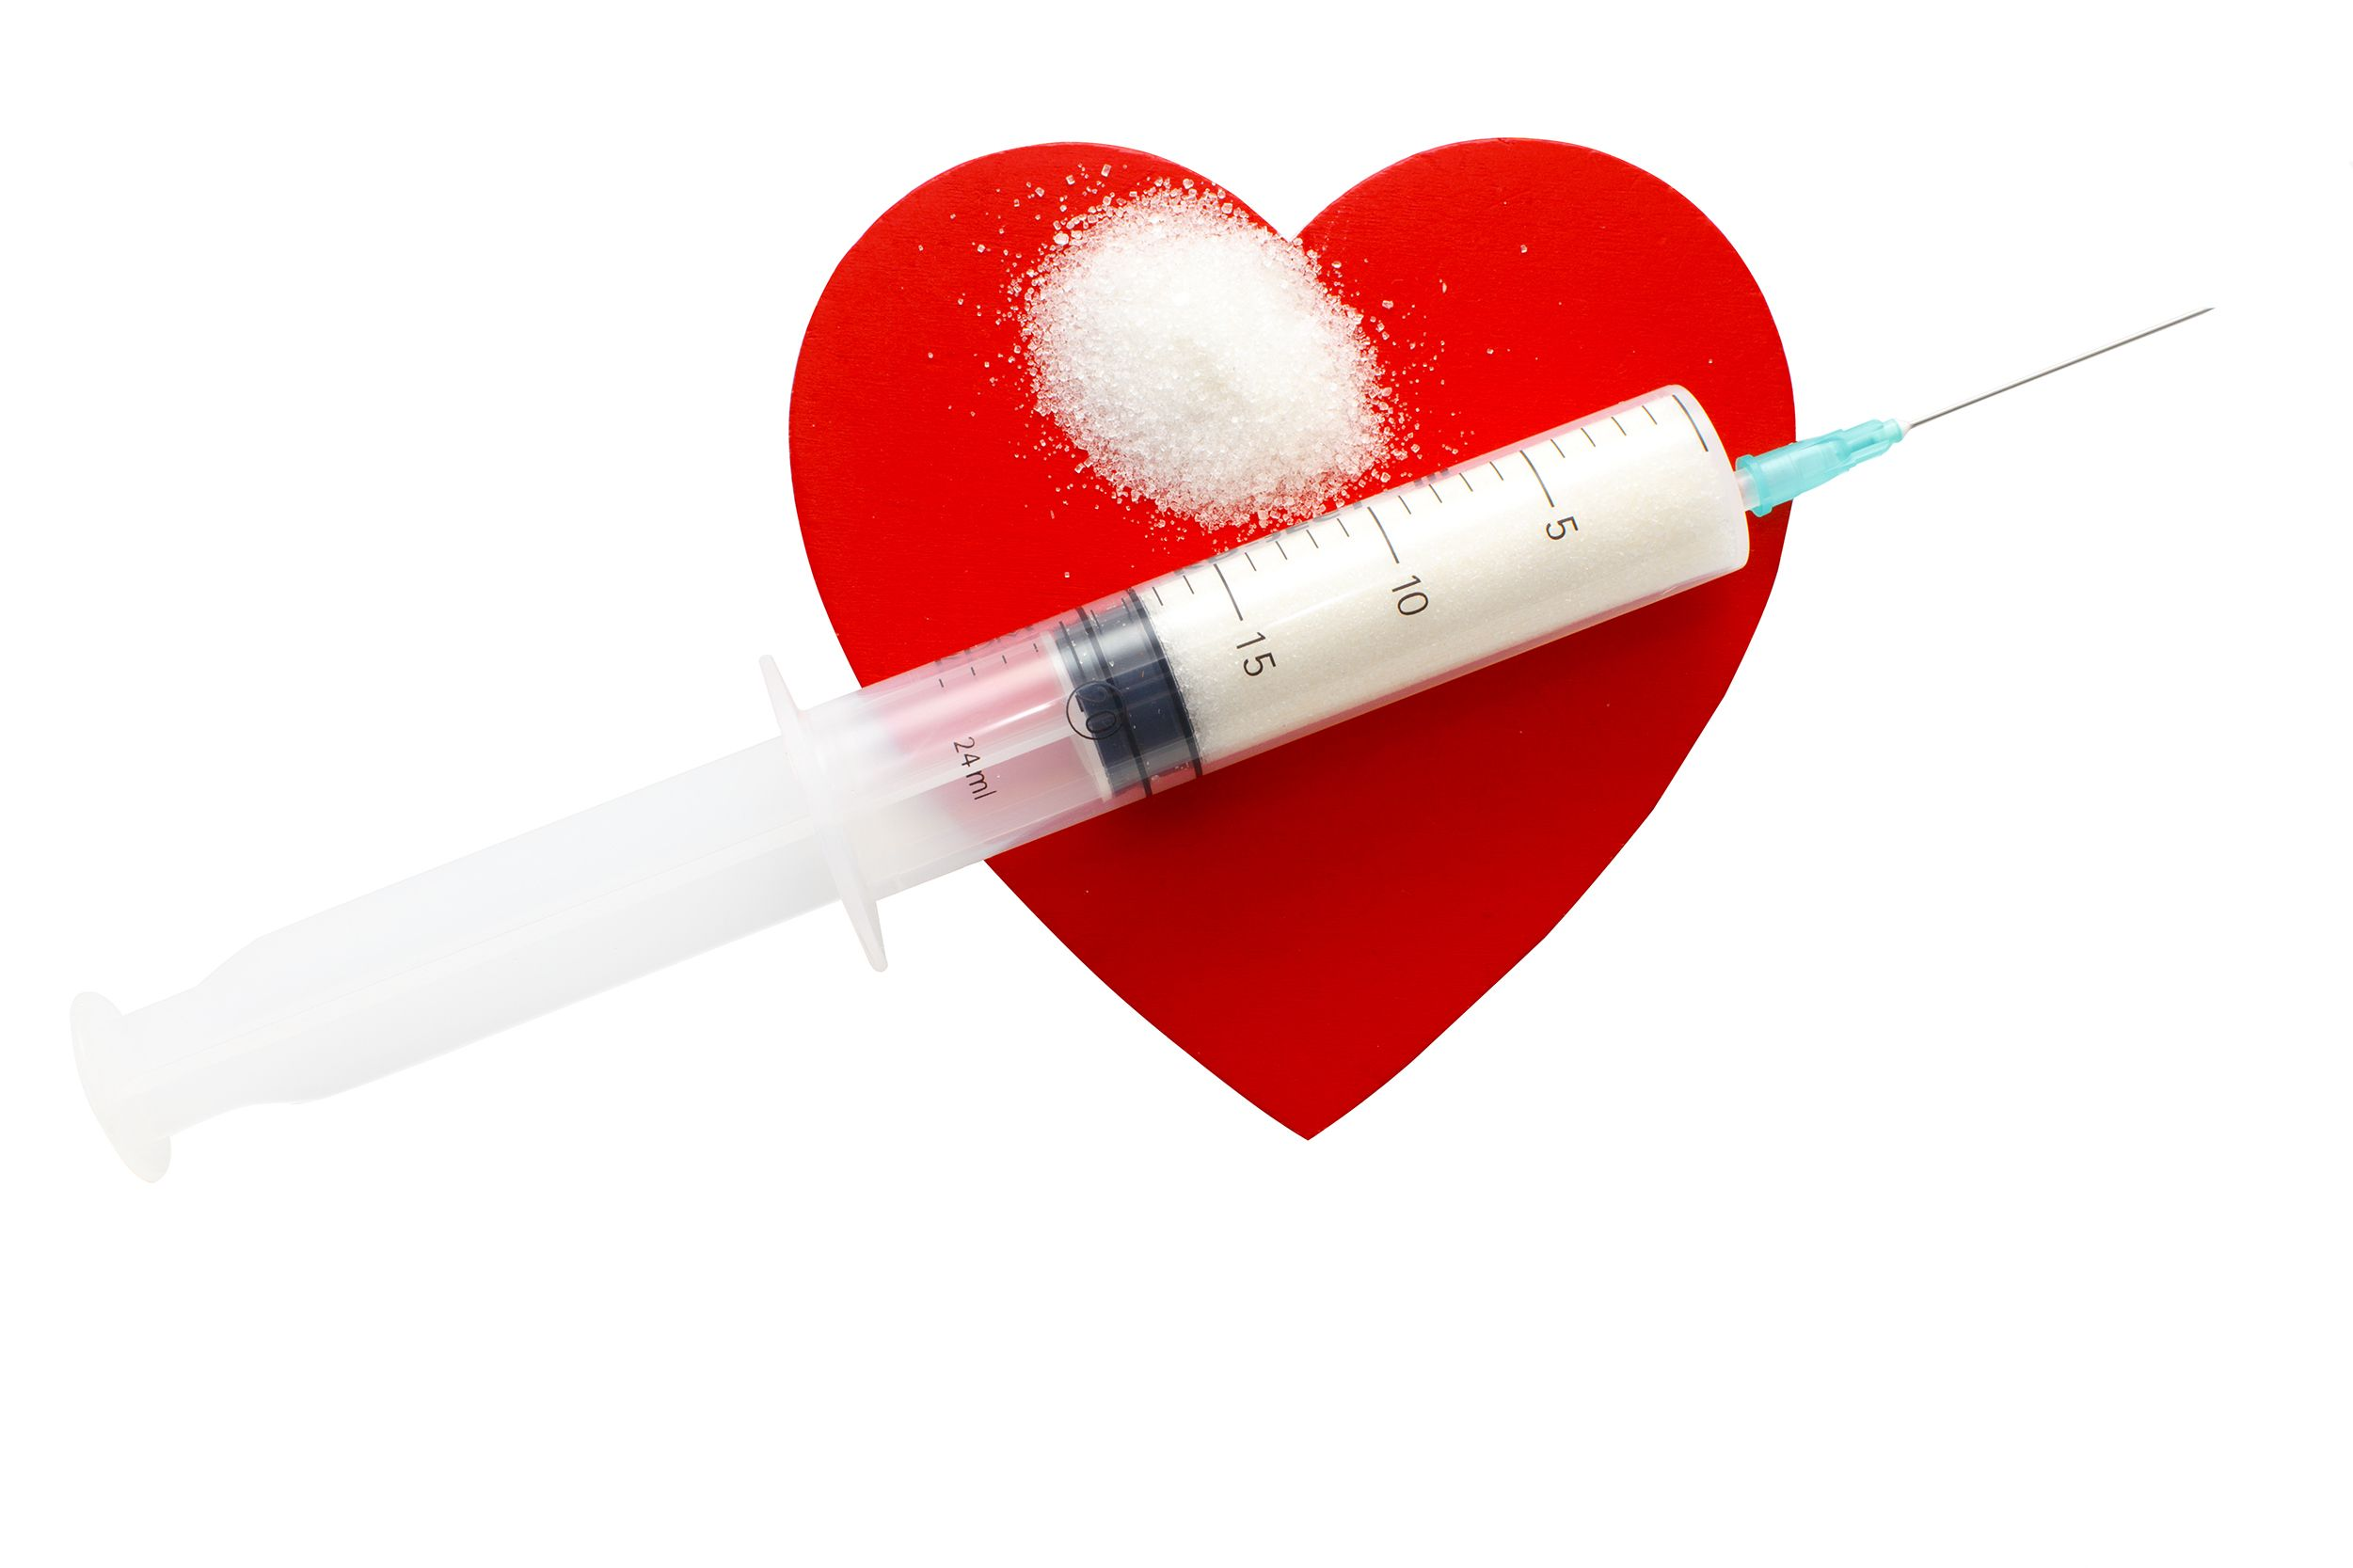 Diabetes and Heart Disease Can Be Deadly Combination | What causes heart  disease, Heart disease, Sugar industry